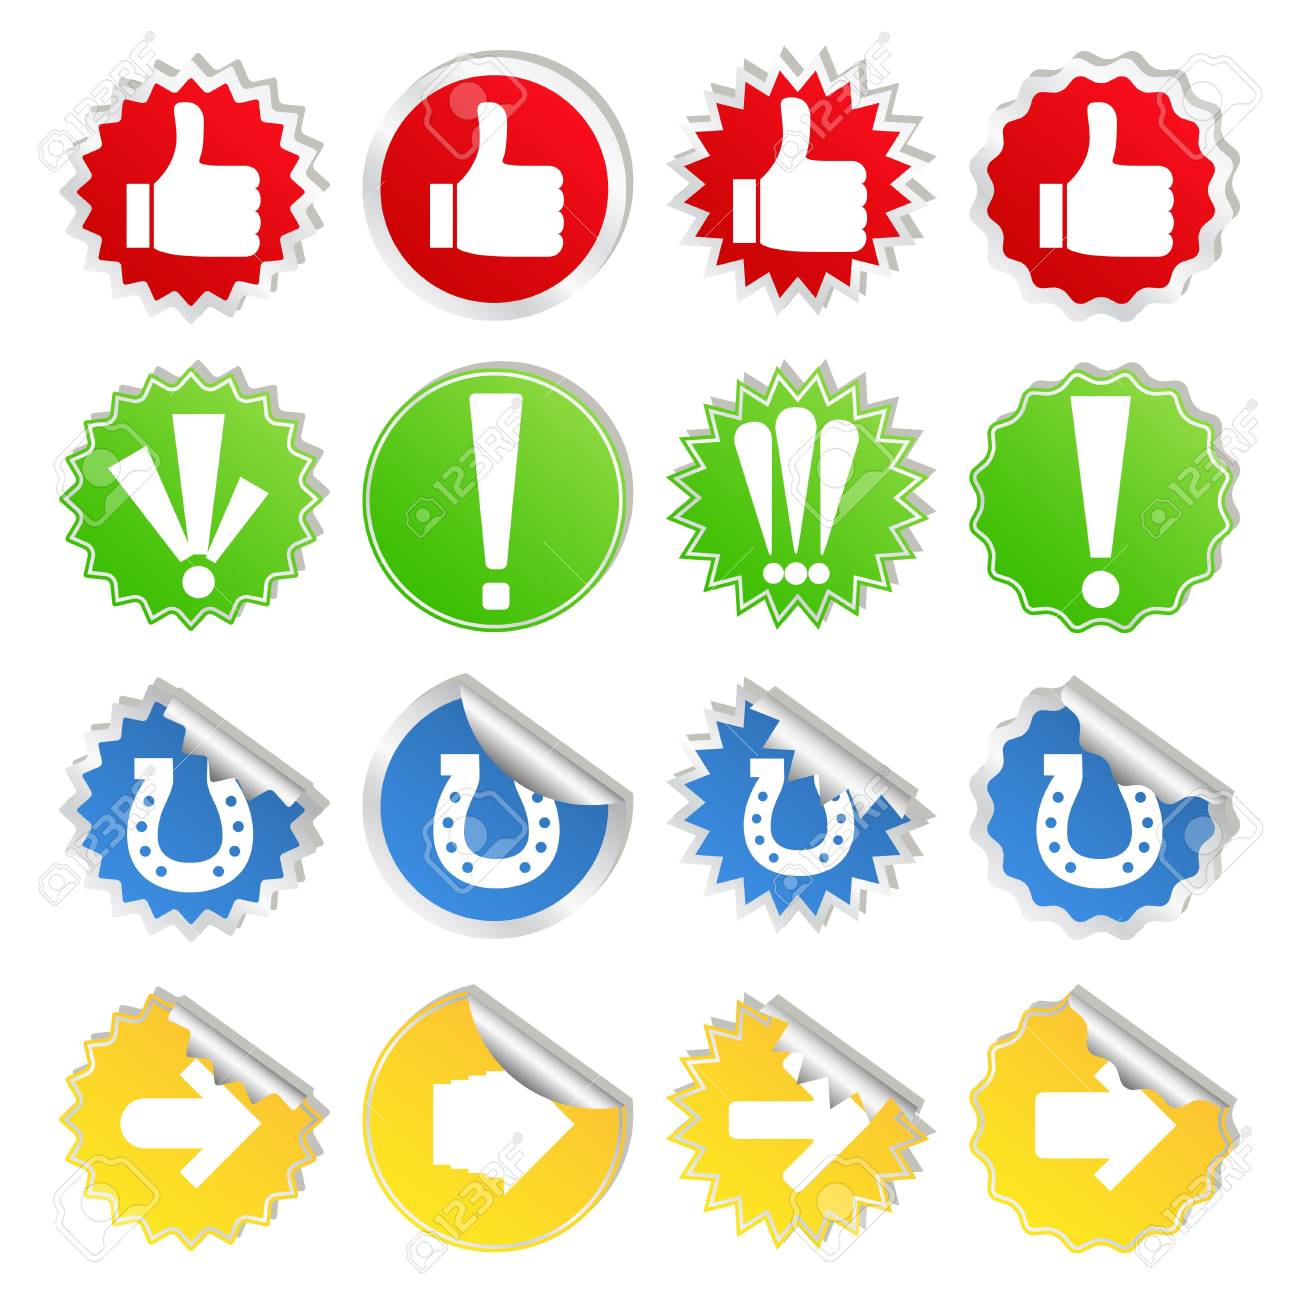 stickers with different signs Stock Vector - 10037027